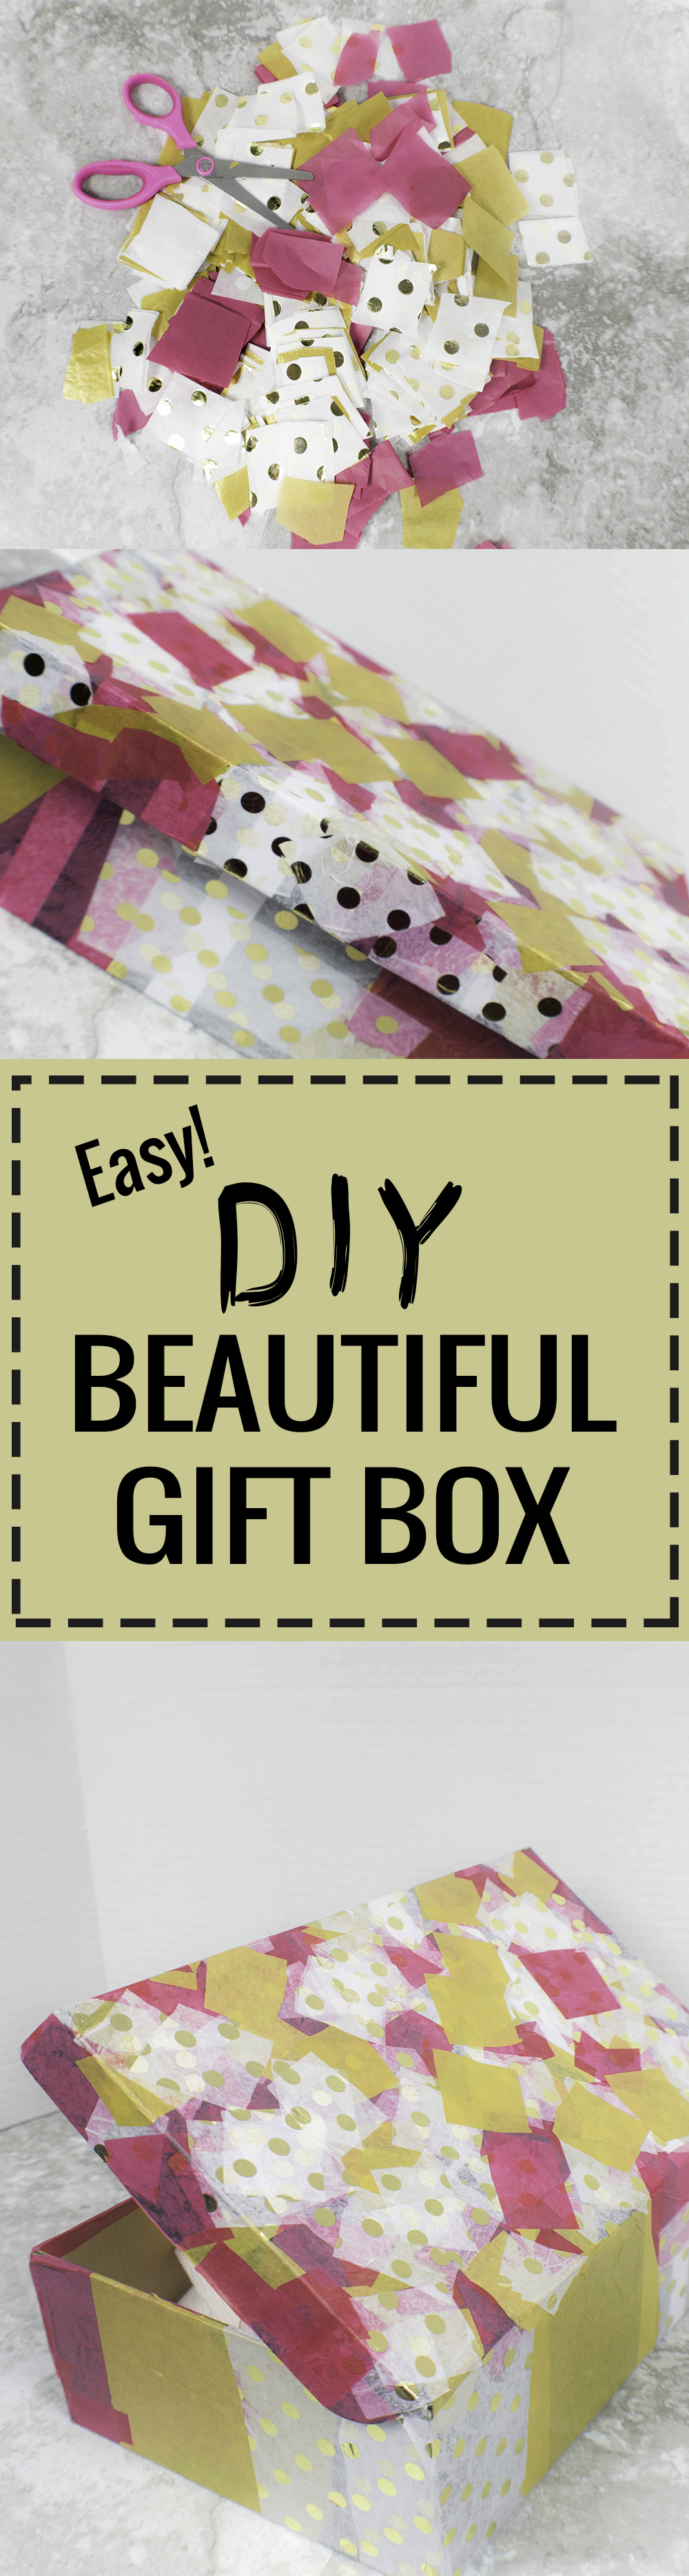 EASY DIY BEAUTIFUL GIFT BOX